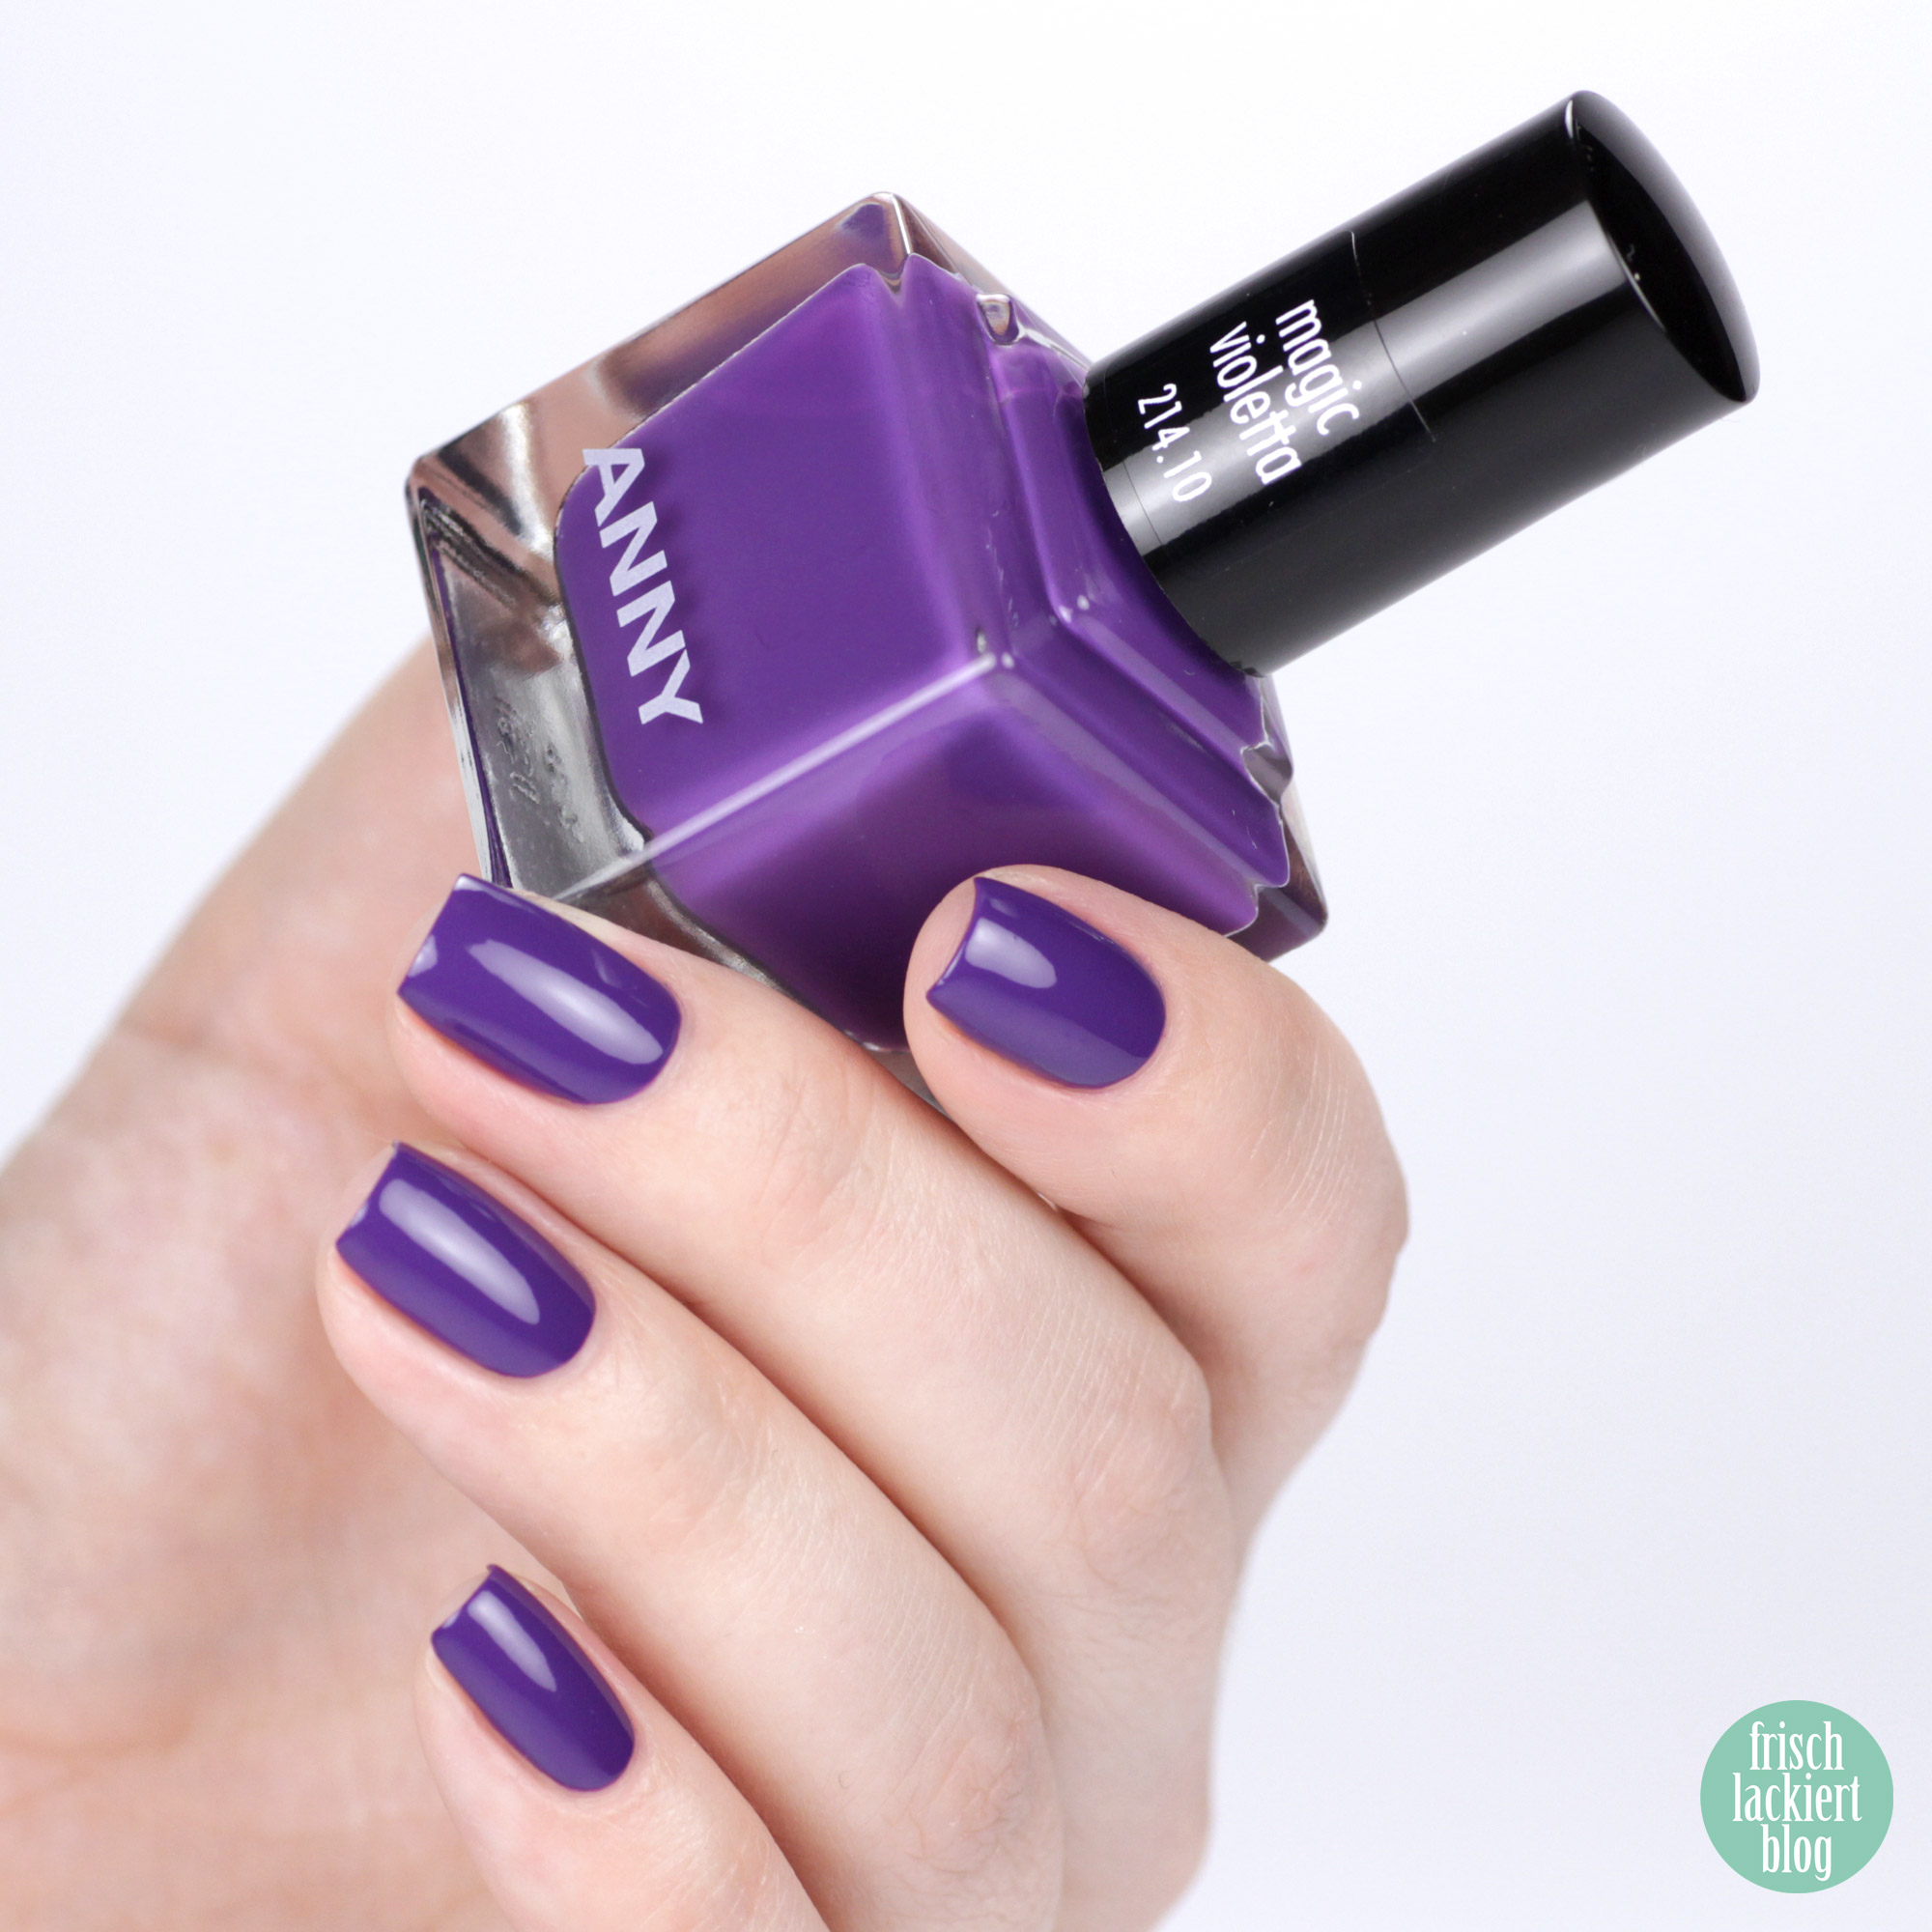 ANNY Ultra Violett Kollektion – Trendfarbe 2018 als Nagellack – Magic Violetta – swatch by frischlackiert